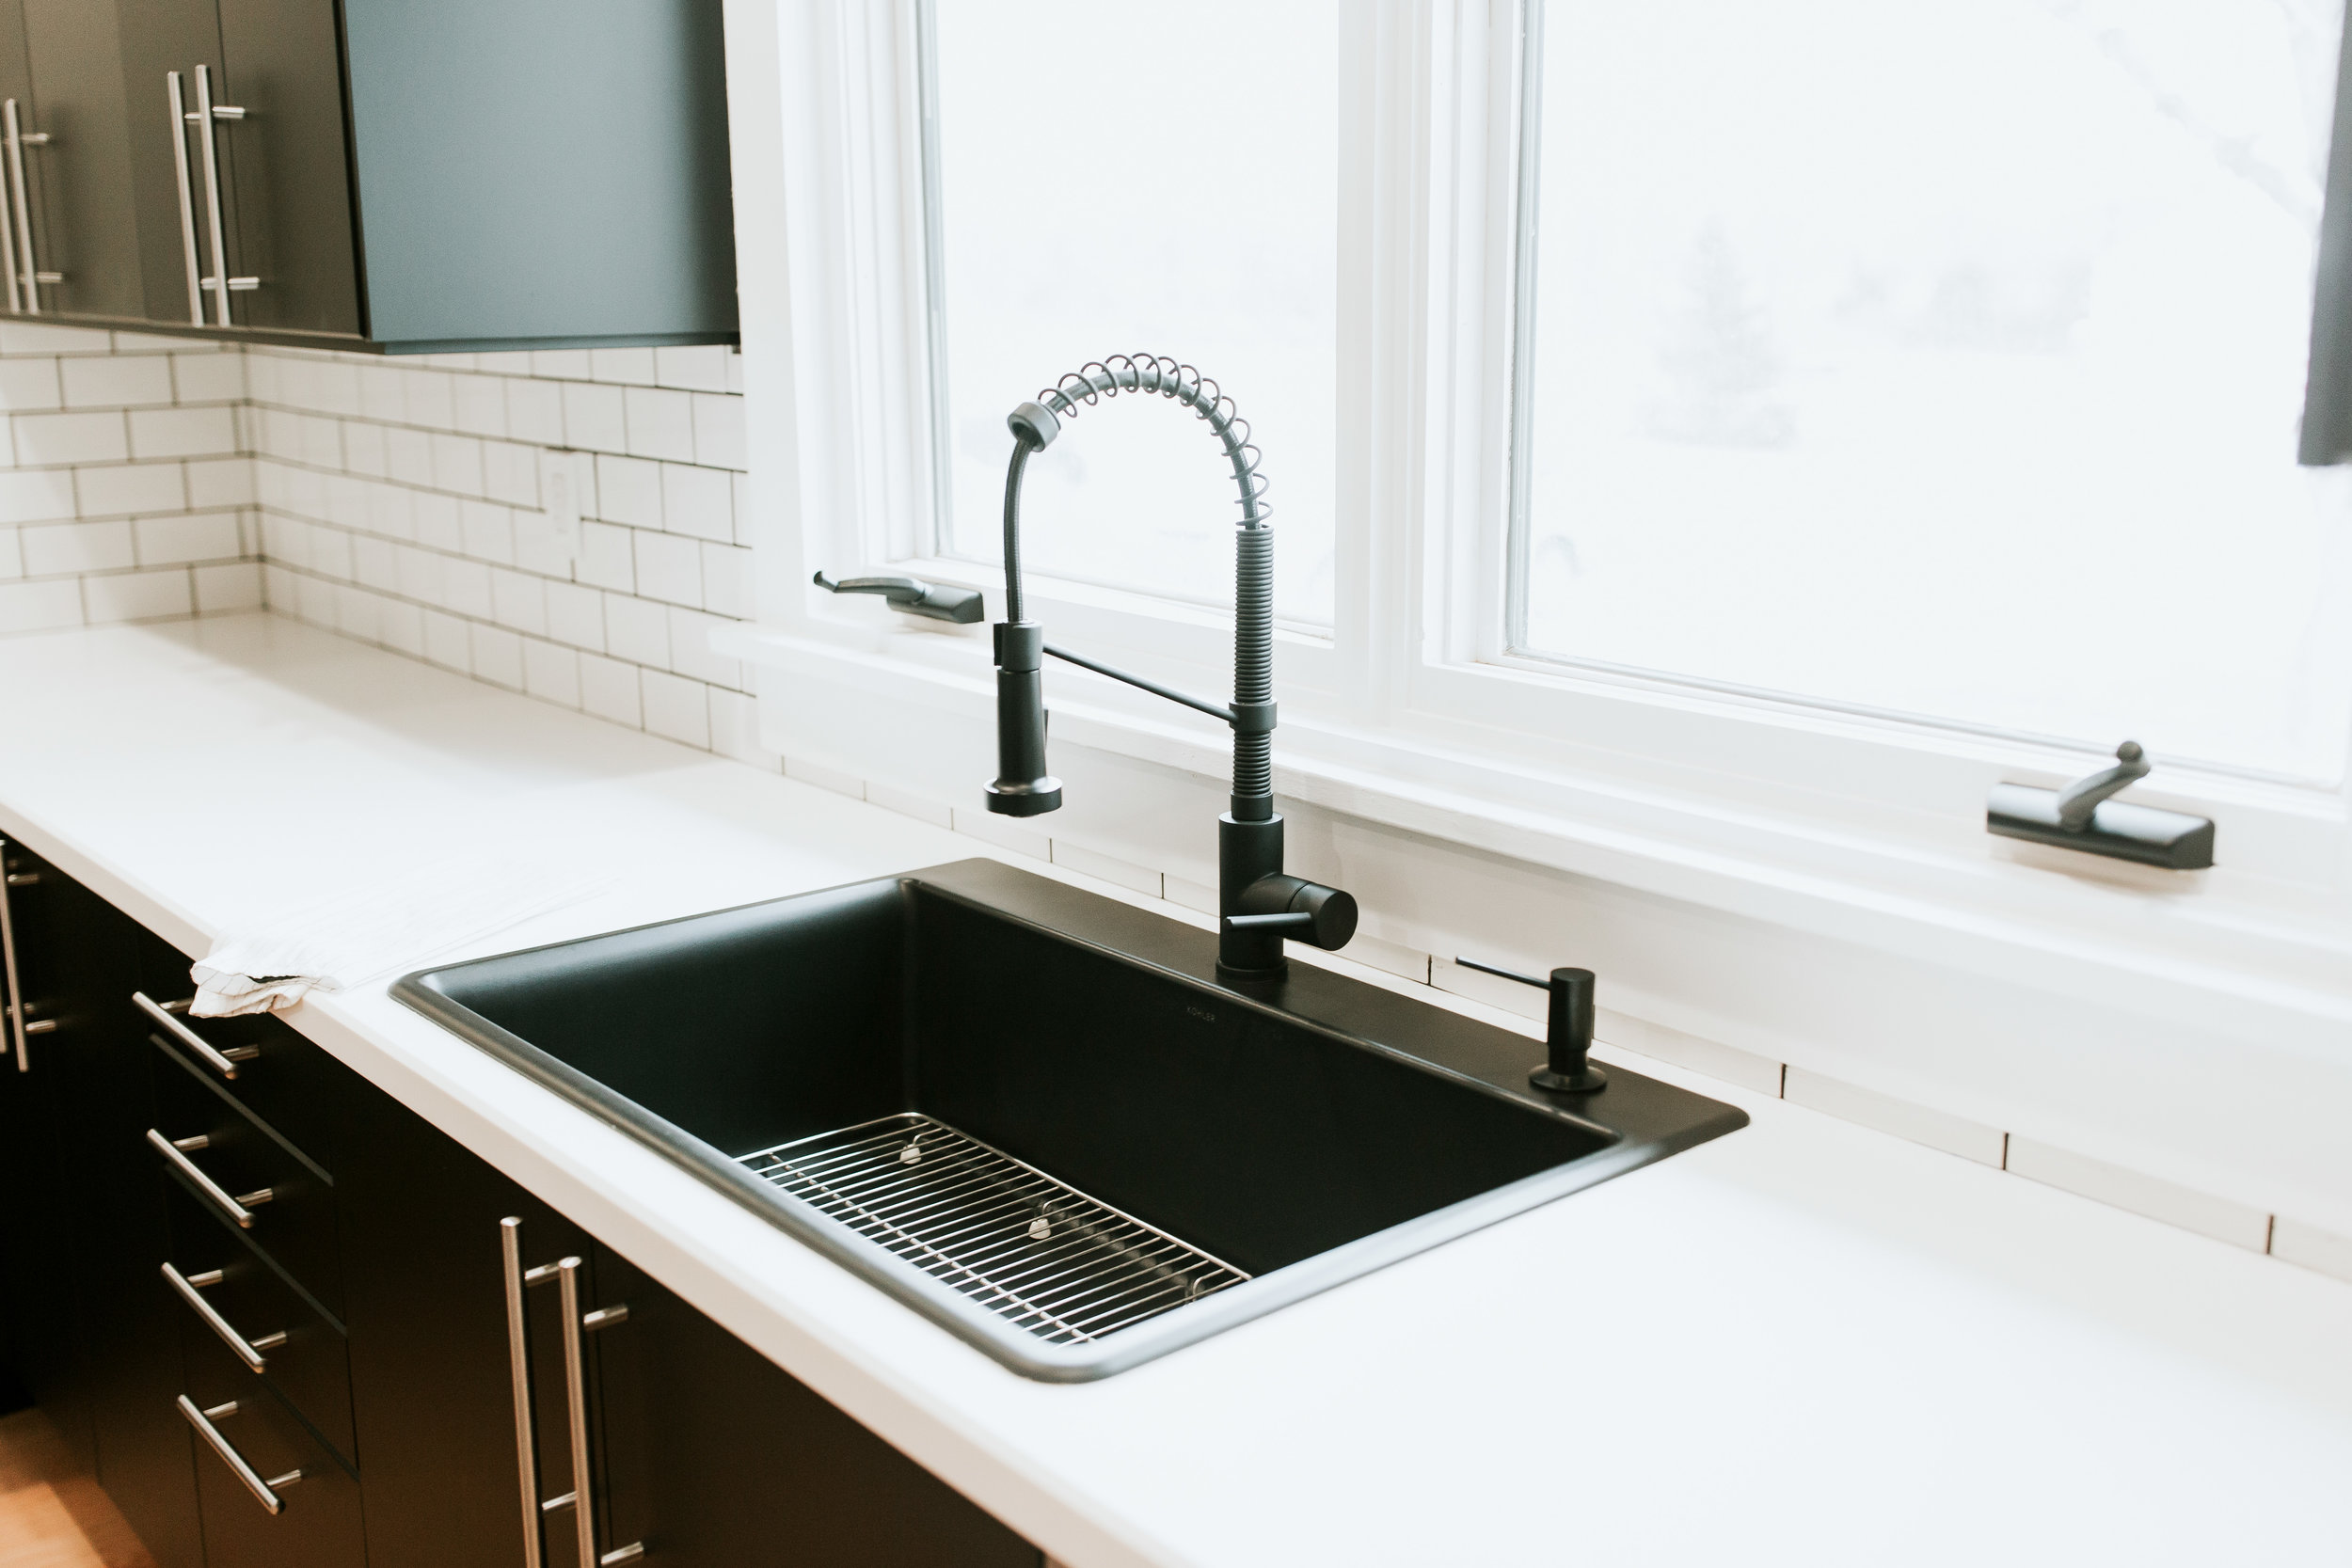 modern kitchen sources - Ikea kungsbacka cabinets, subway tile, black sink, white countertops, black faucet